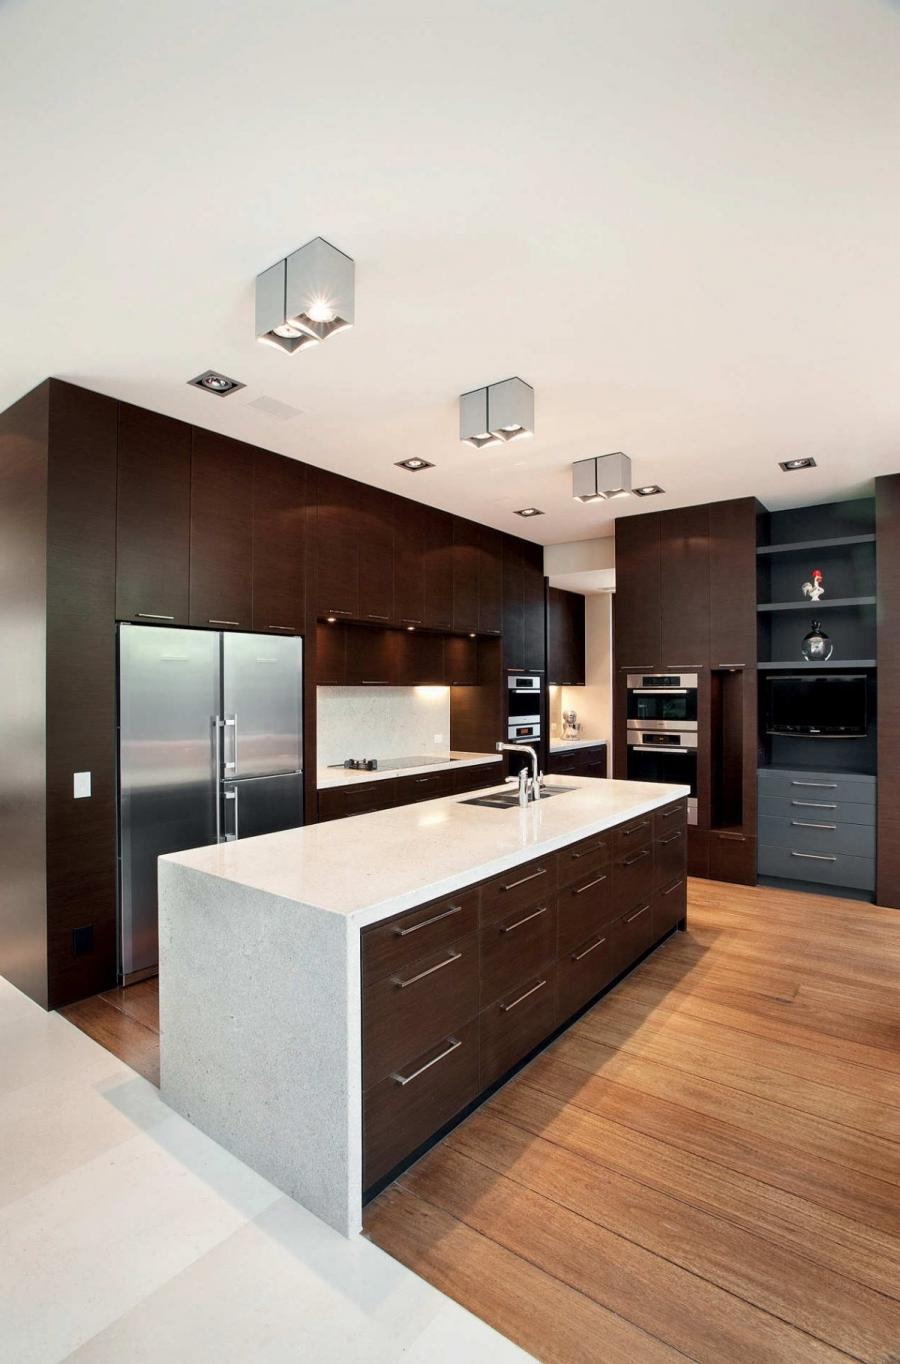 Kitchen designs photos australia Modern home furniture australia